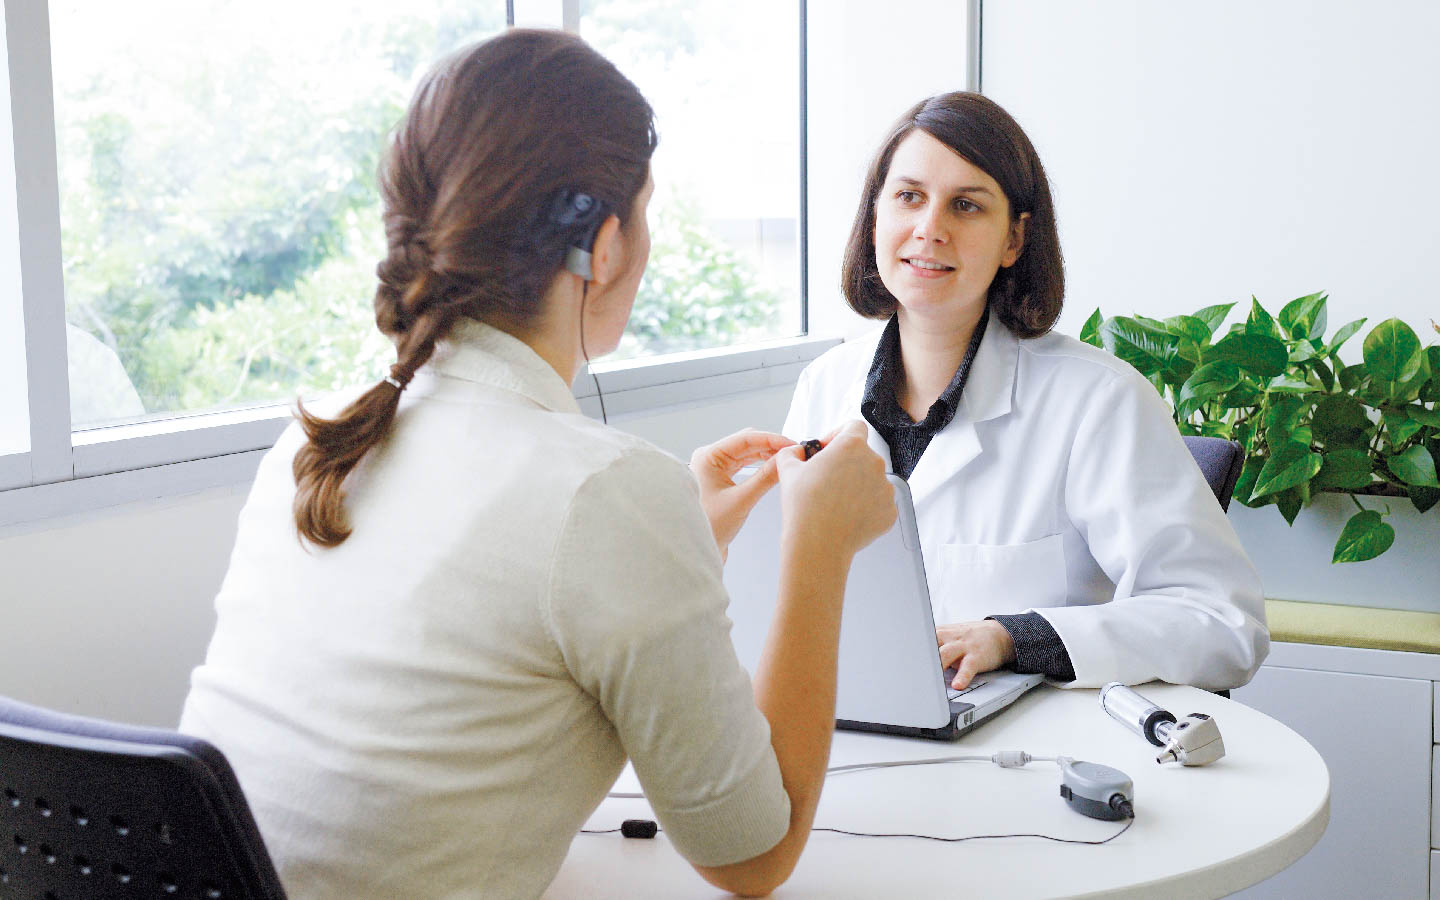 An audiologist conducts a hearing test with a patient